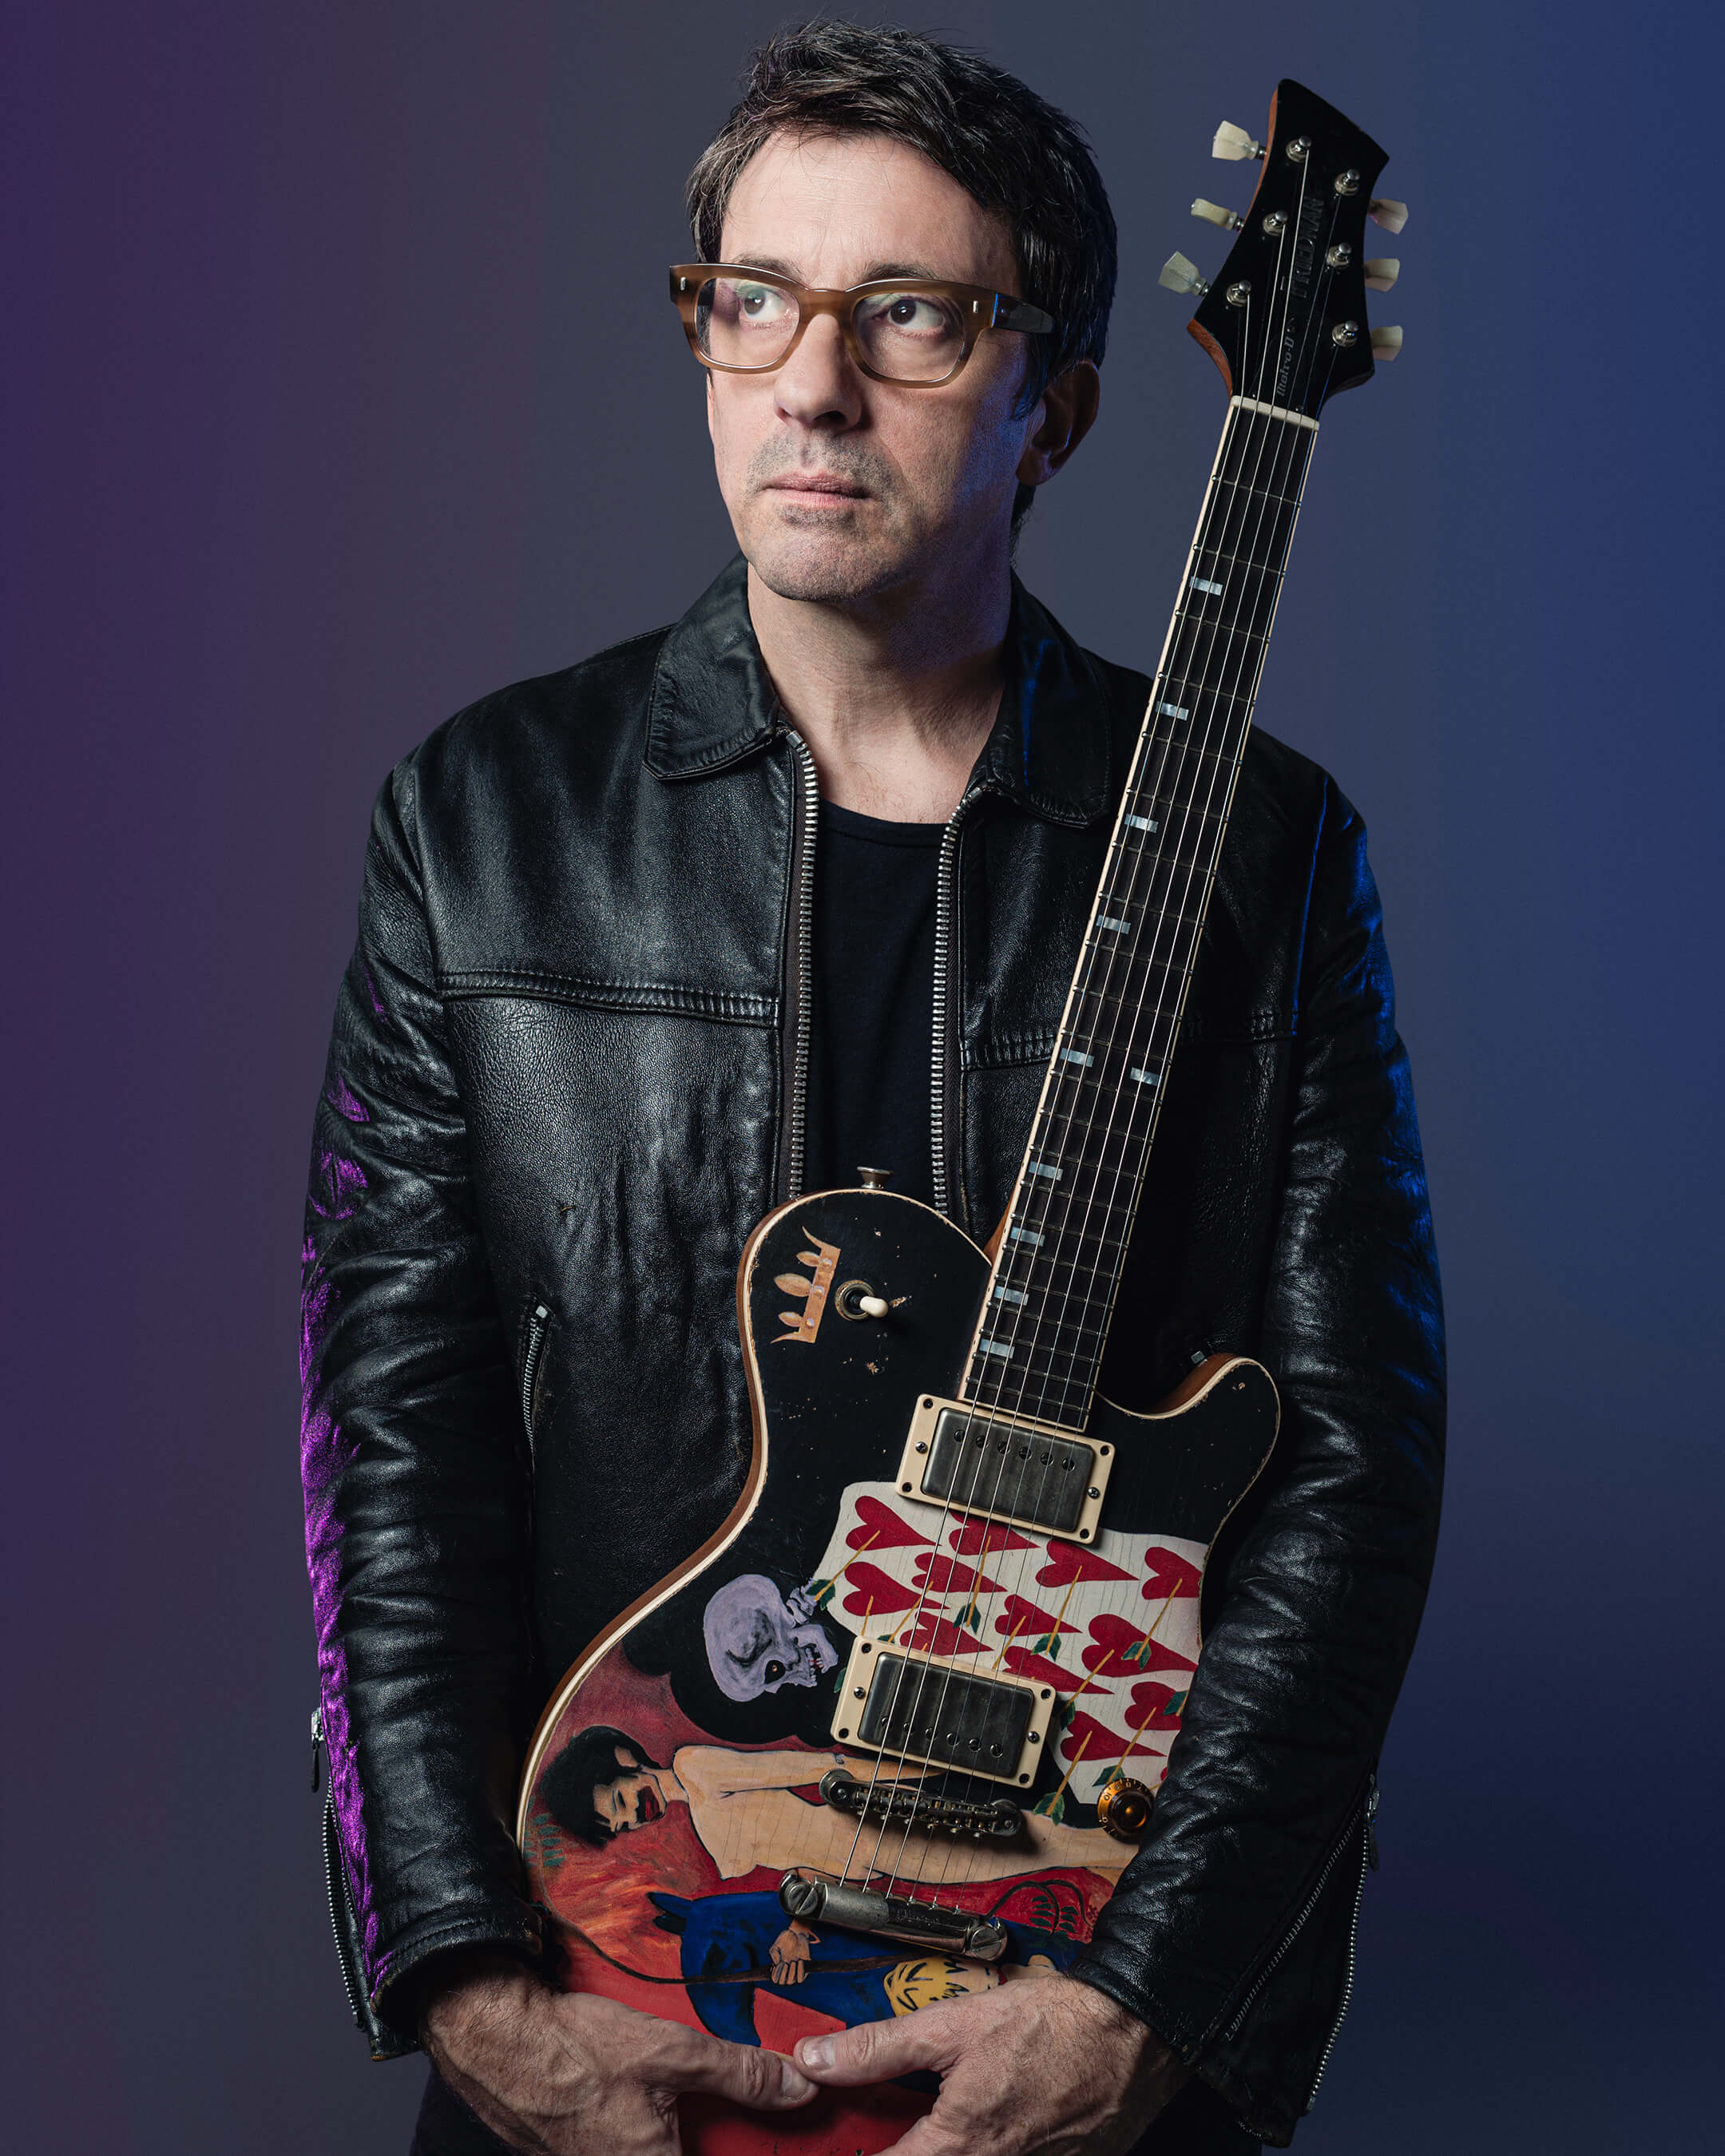 Graham Coxon of Jaded Hearts Club